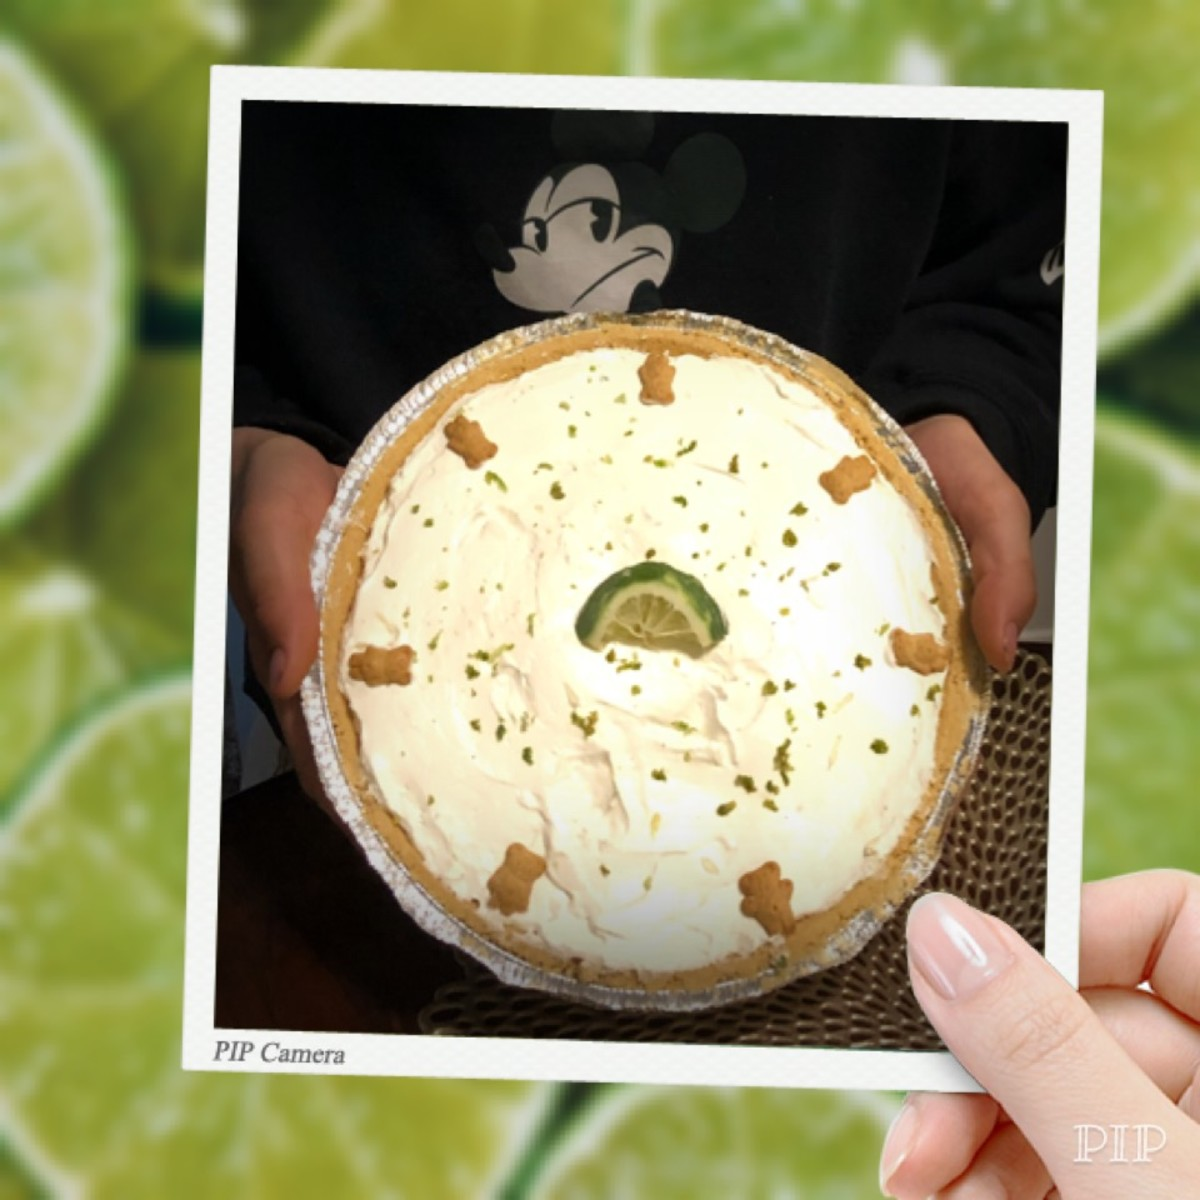 A happy birthday key lime cheesecake